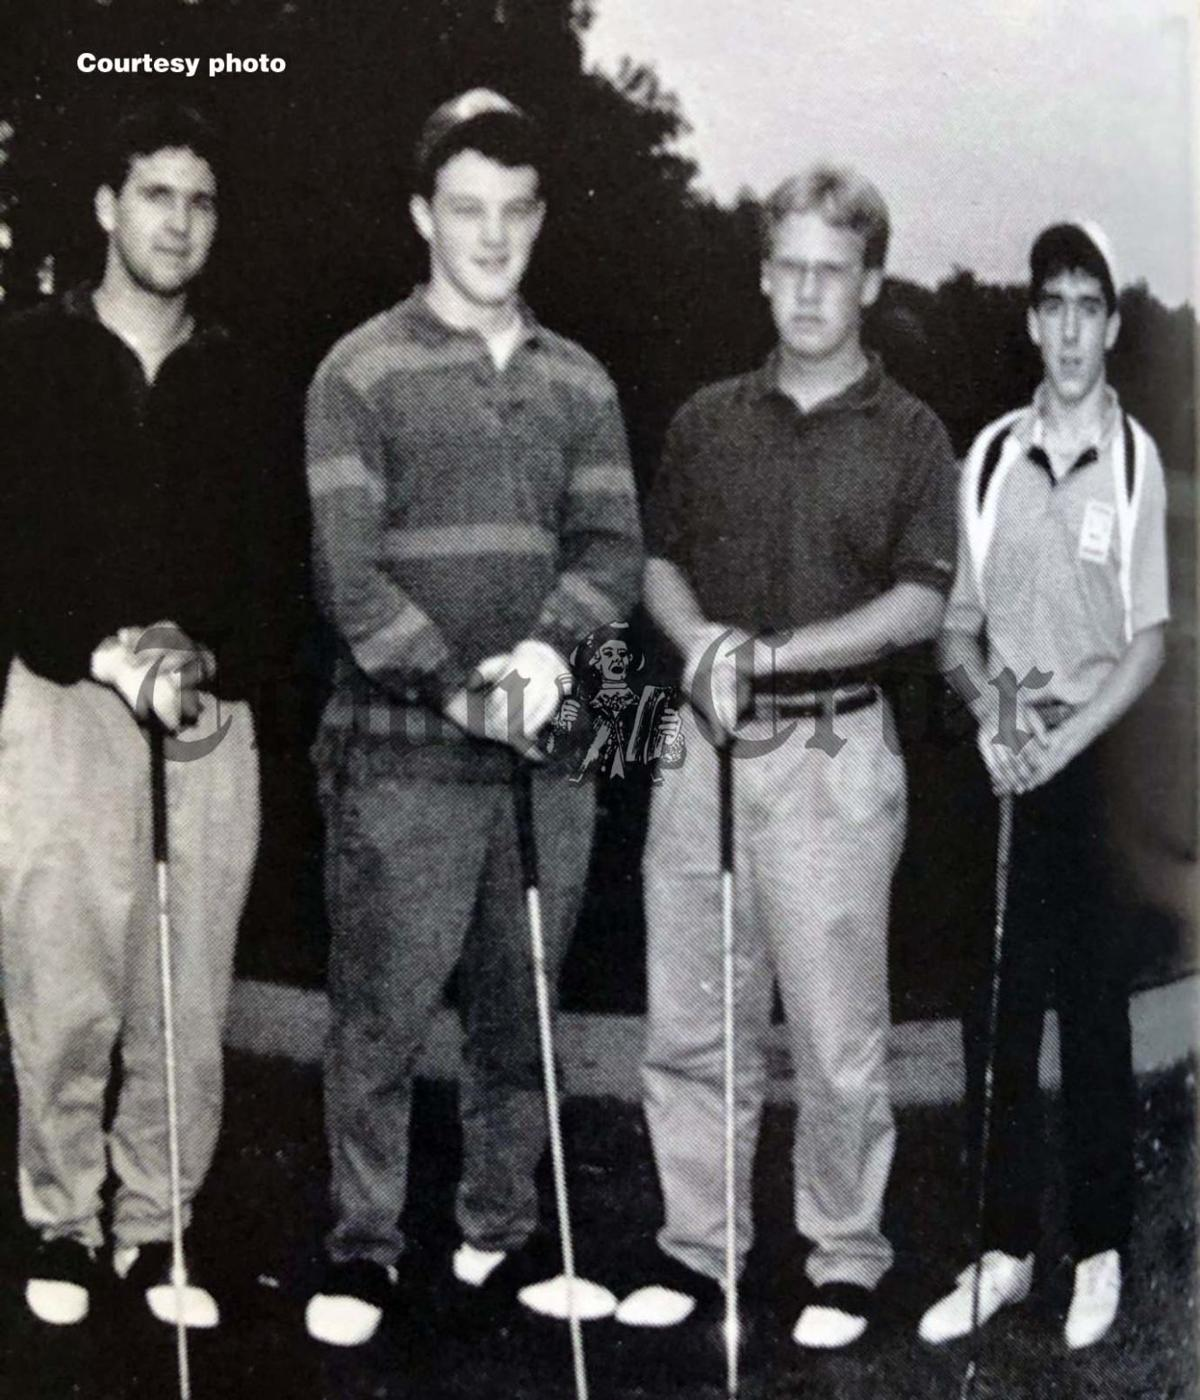 The senior members of the 1990 TMHS Golf team